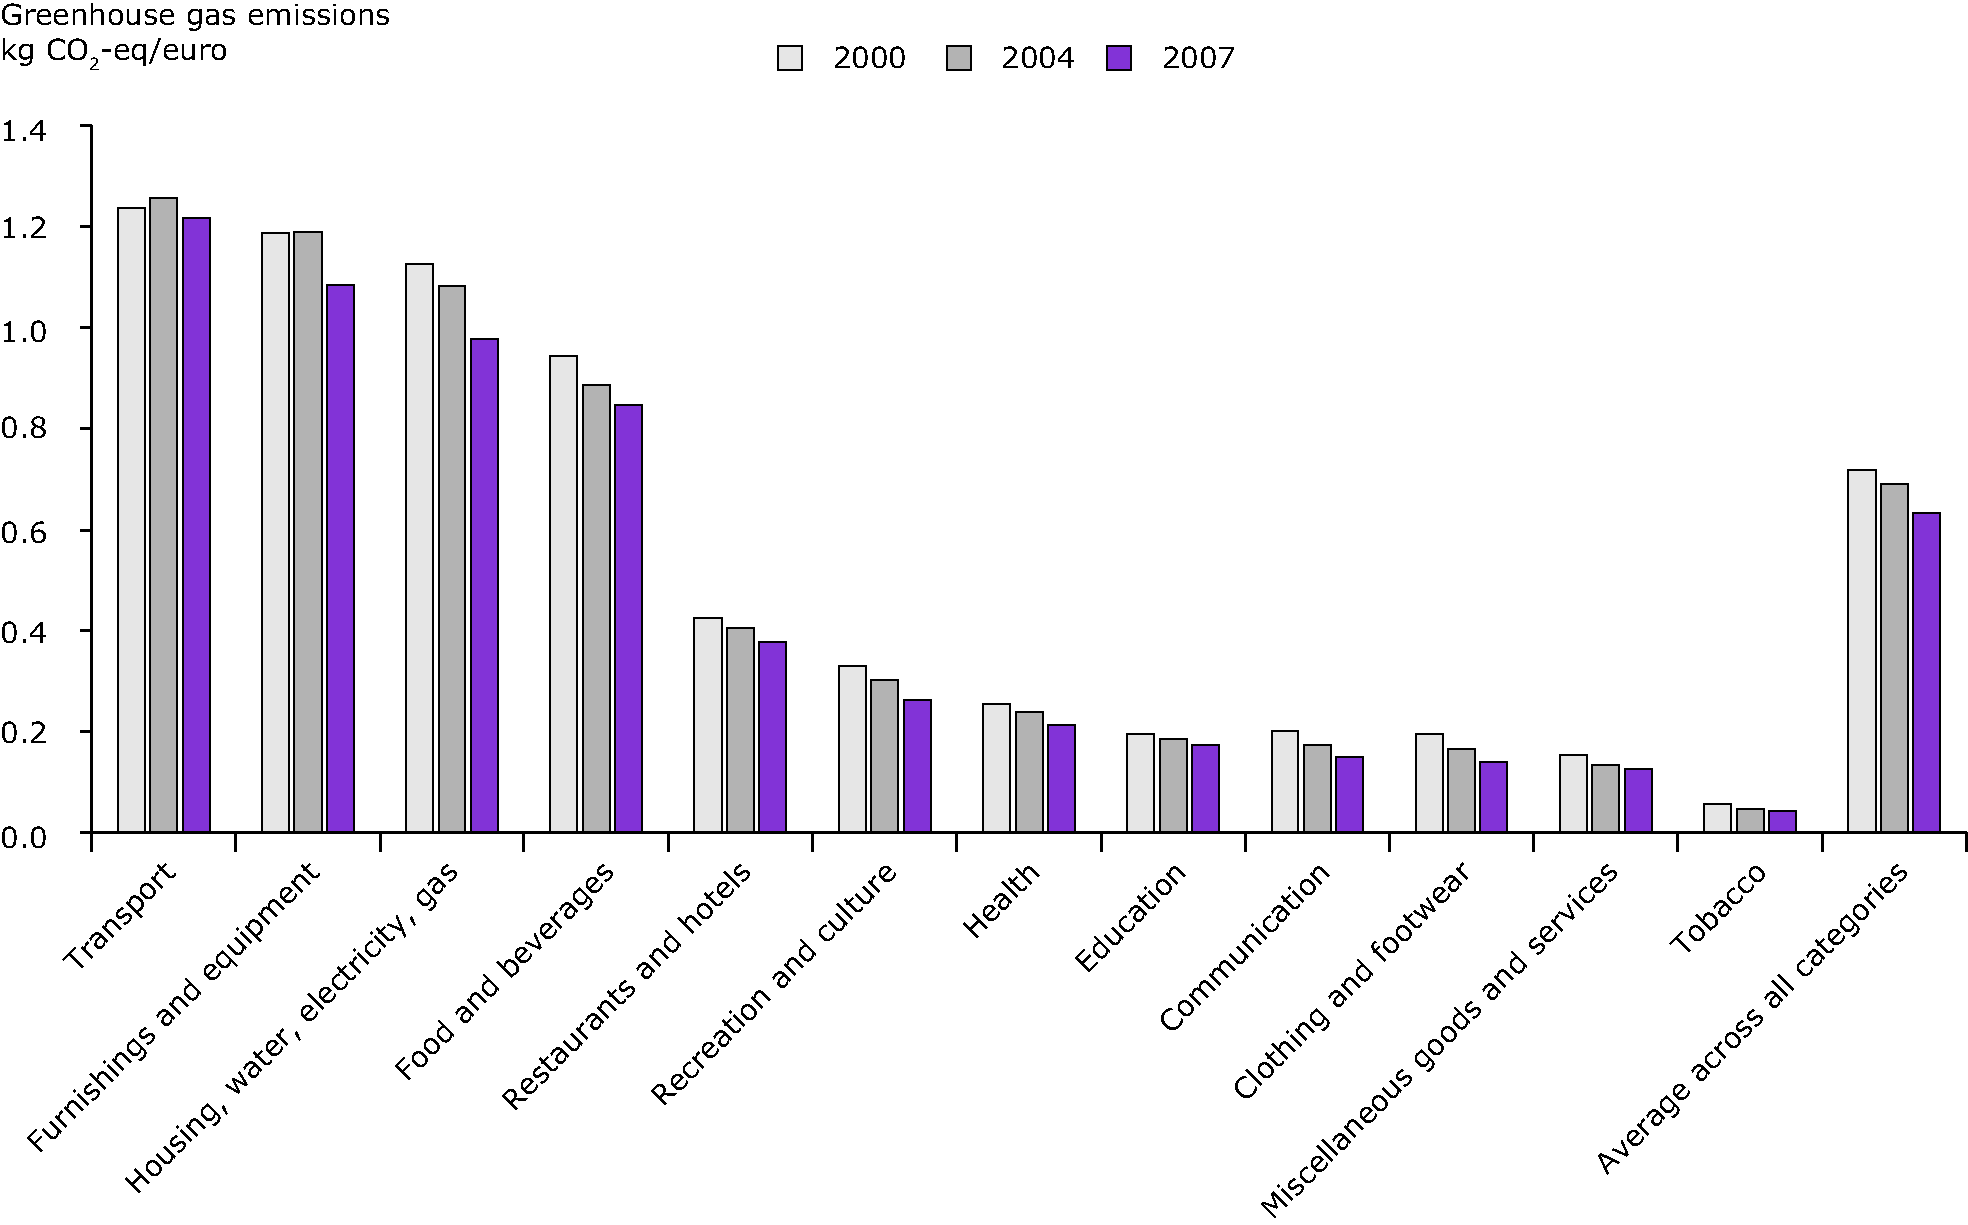 Greenhouse gas emissions induced by household consumption, per Euro spent of expenditure in 12 household consumption categories, 2000-2007